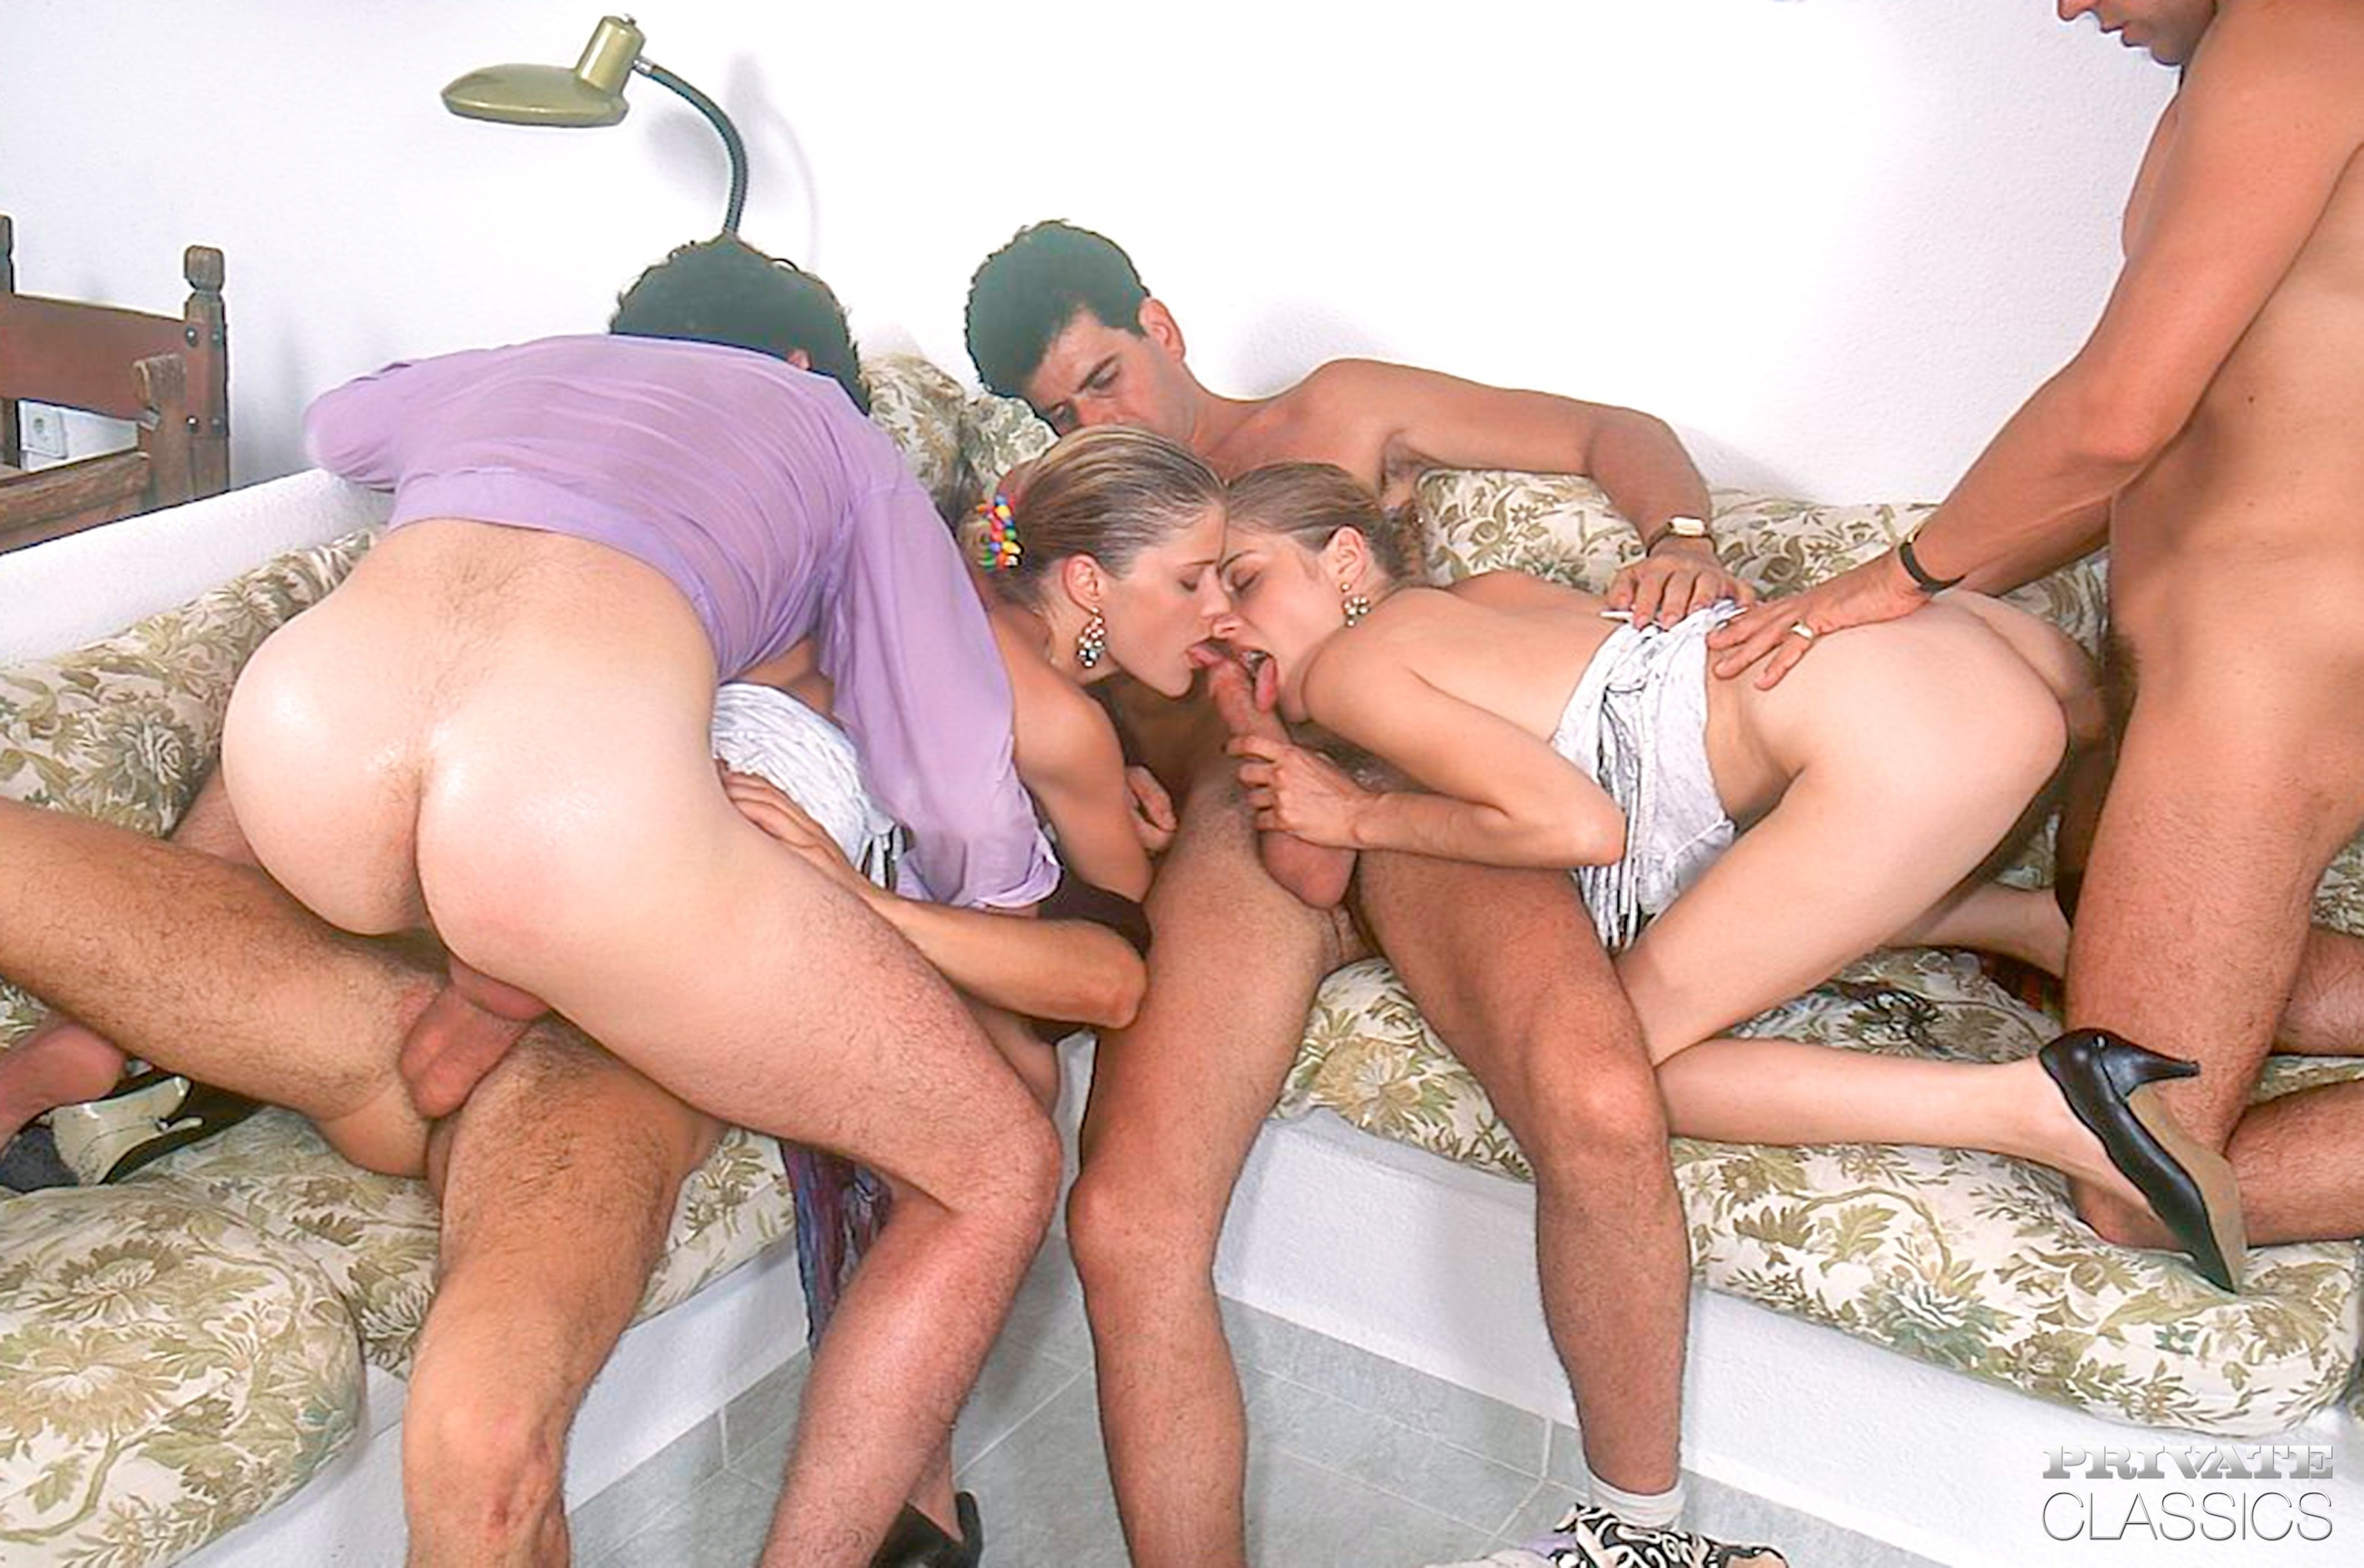 Amateur ex girlfriend threesome shared